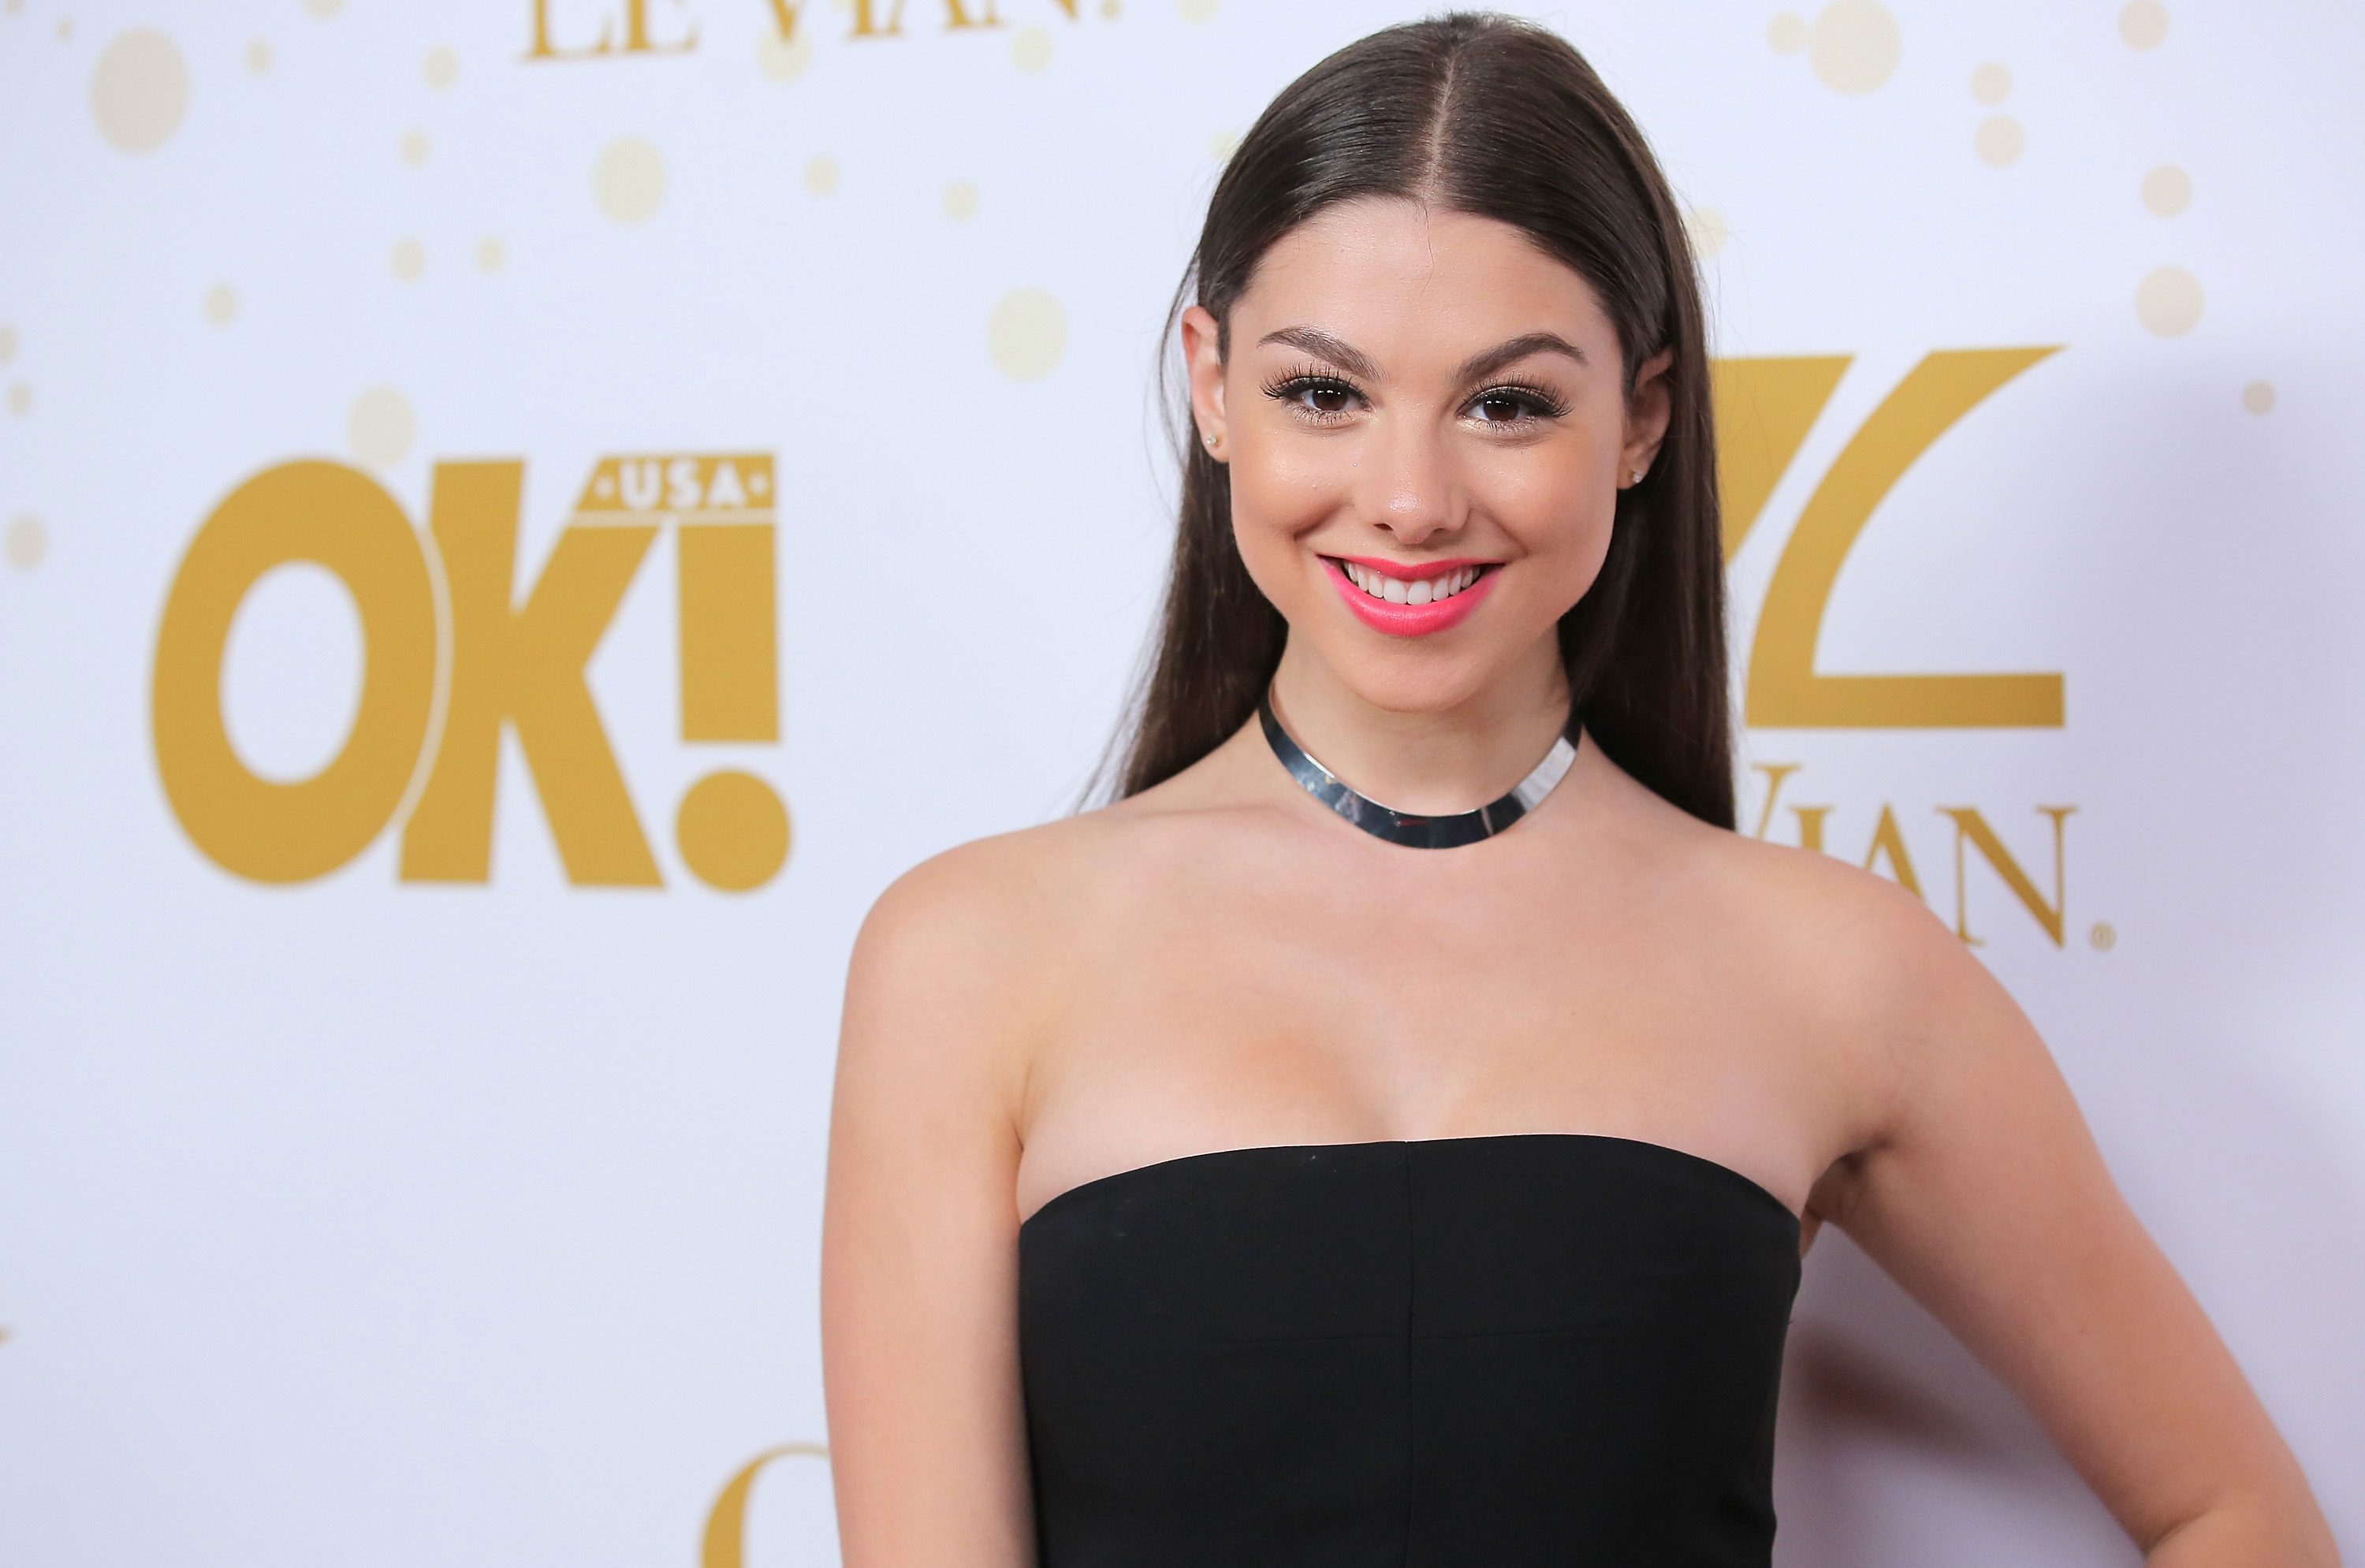 kira kosarin actress wallpaper background hd 62451